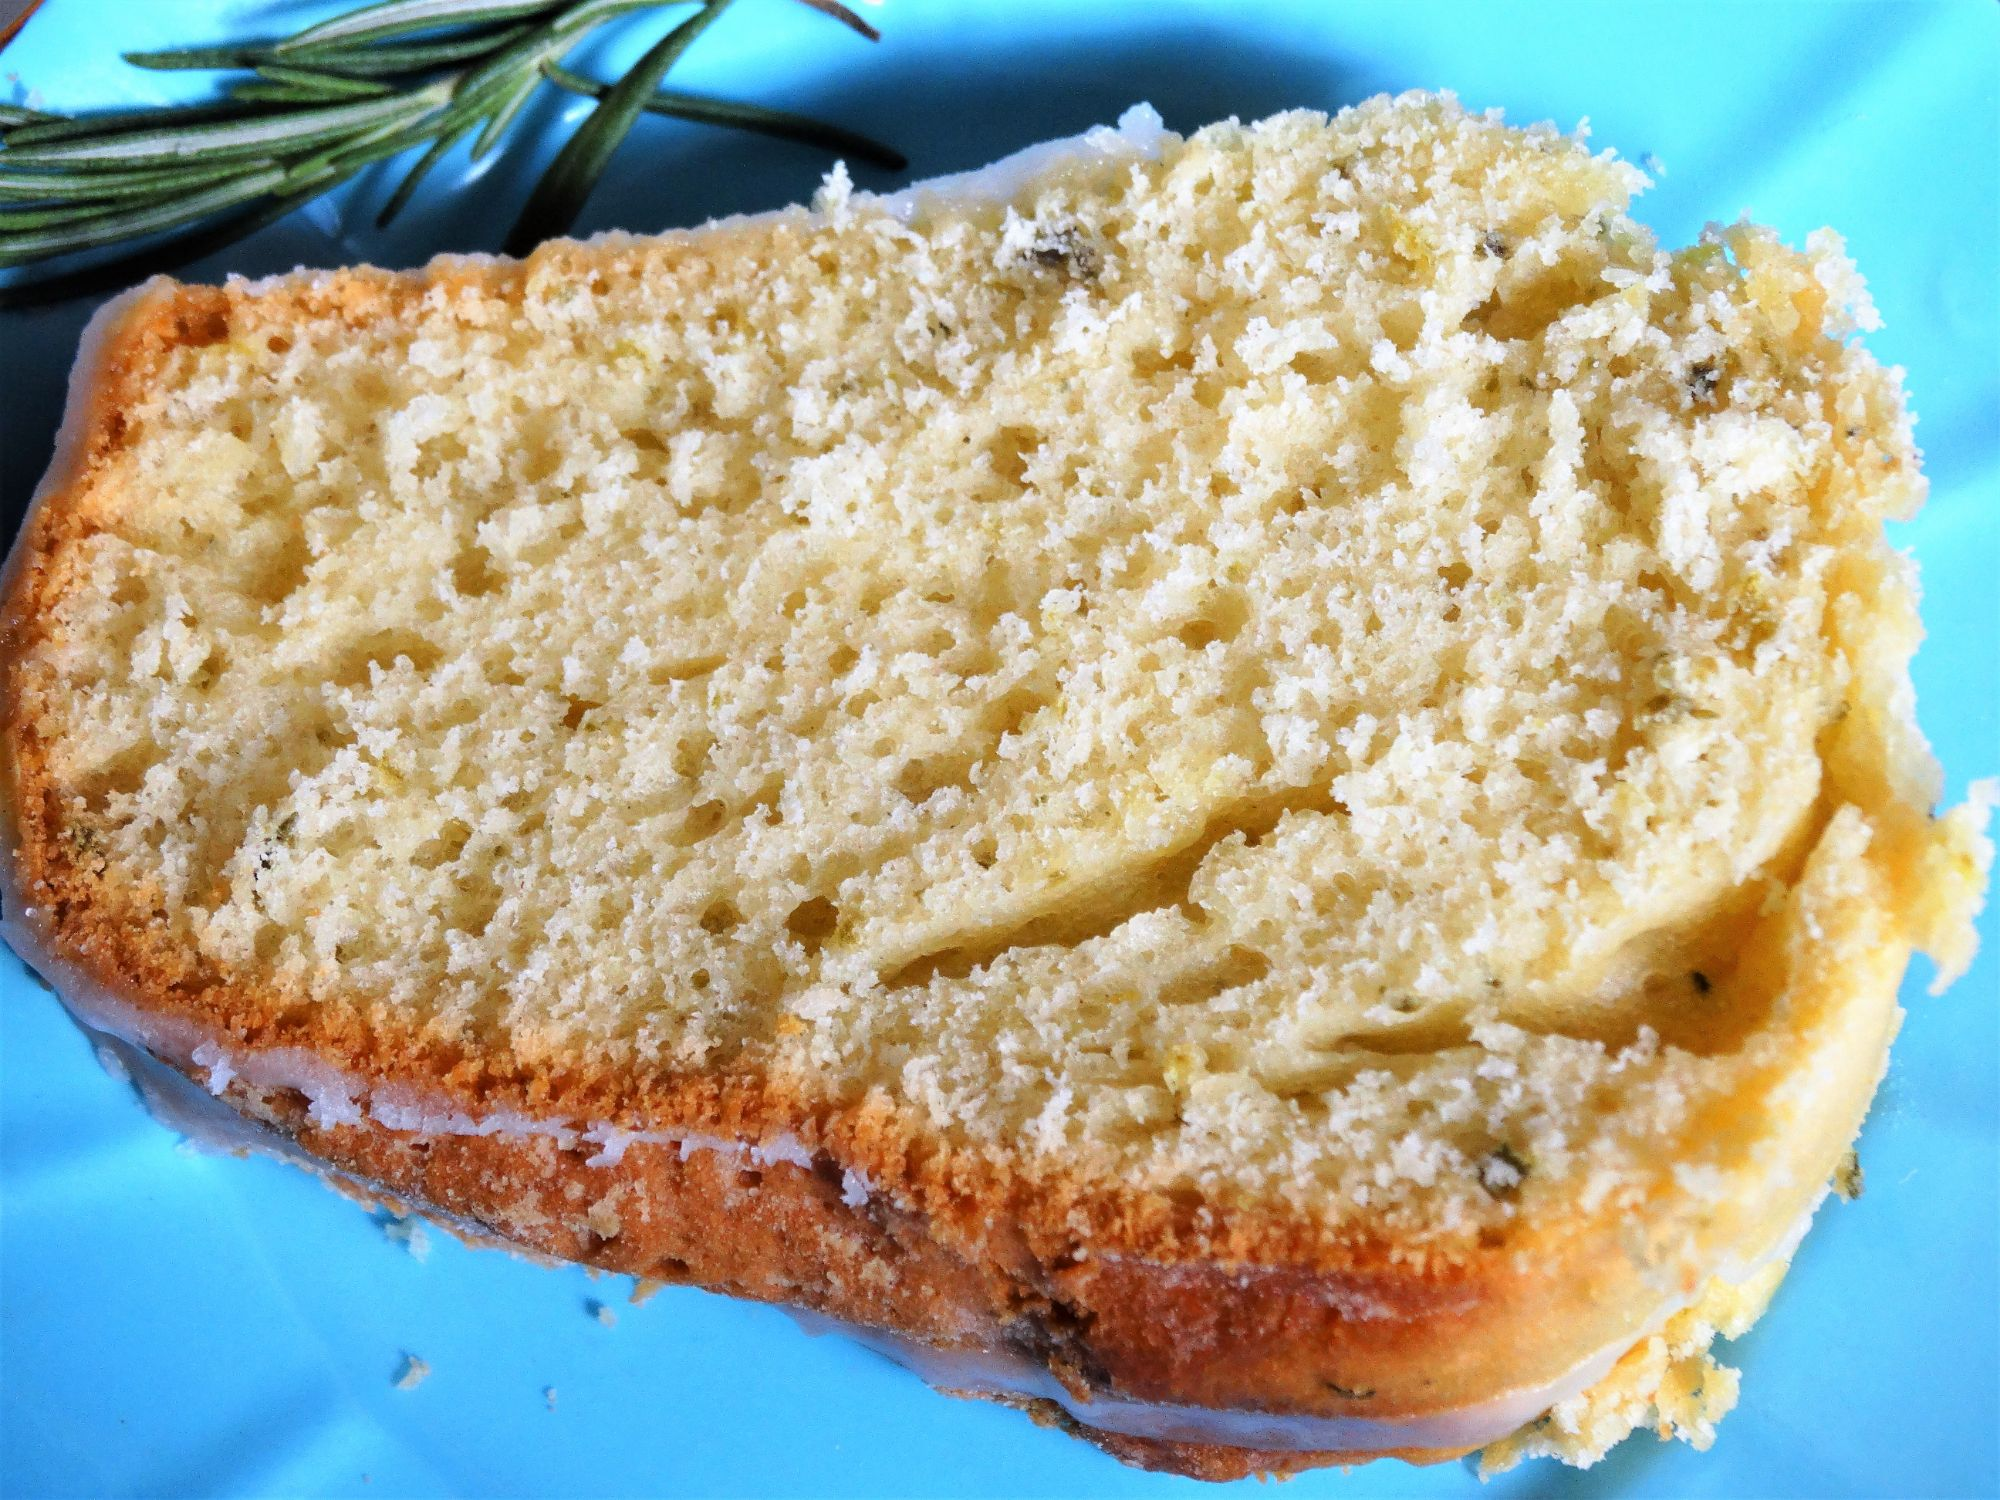 Rosemary and Lome Cake